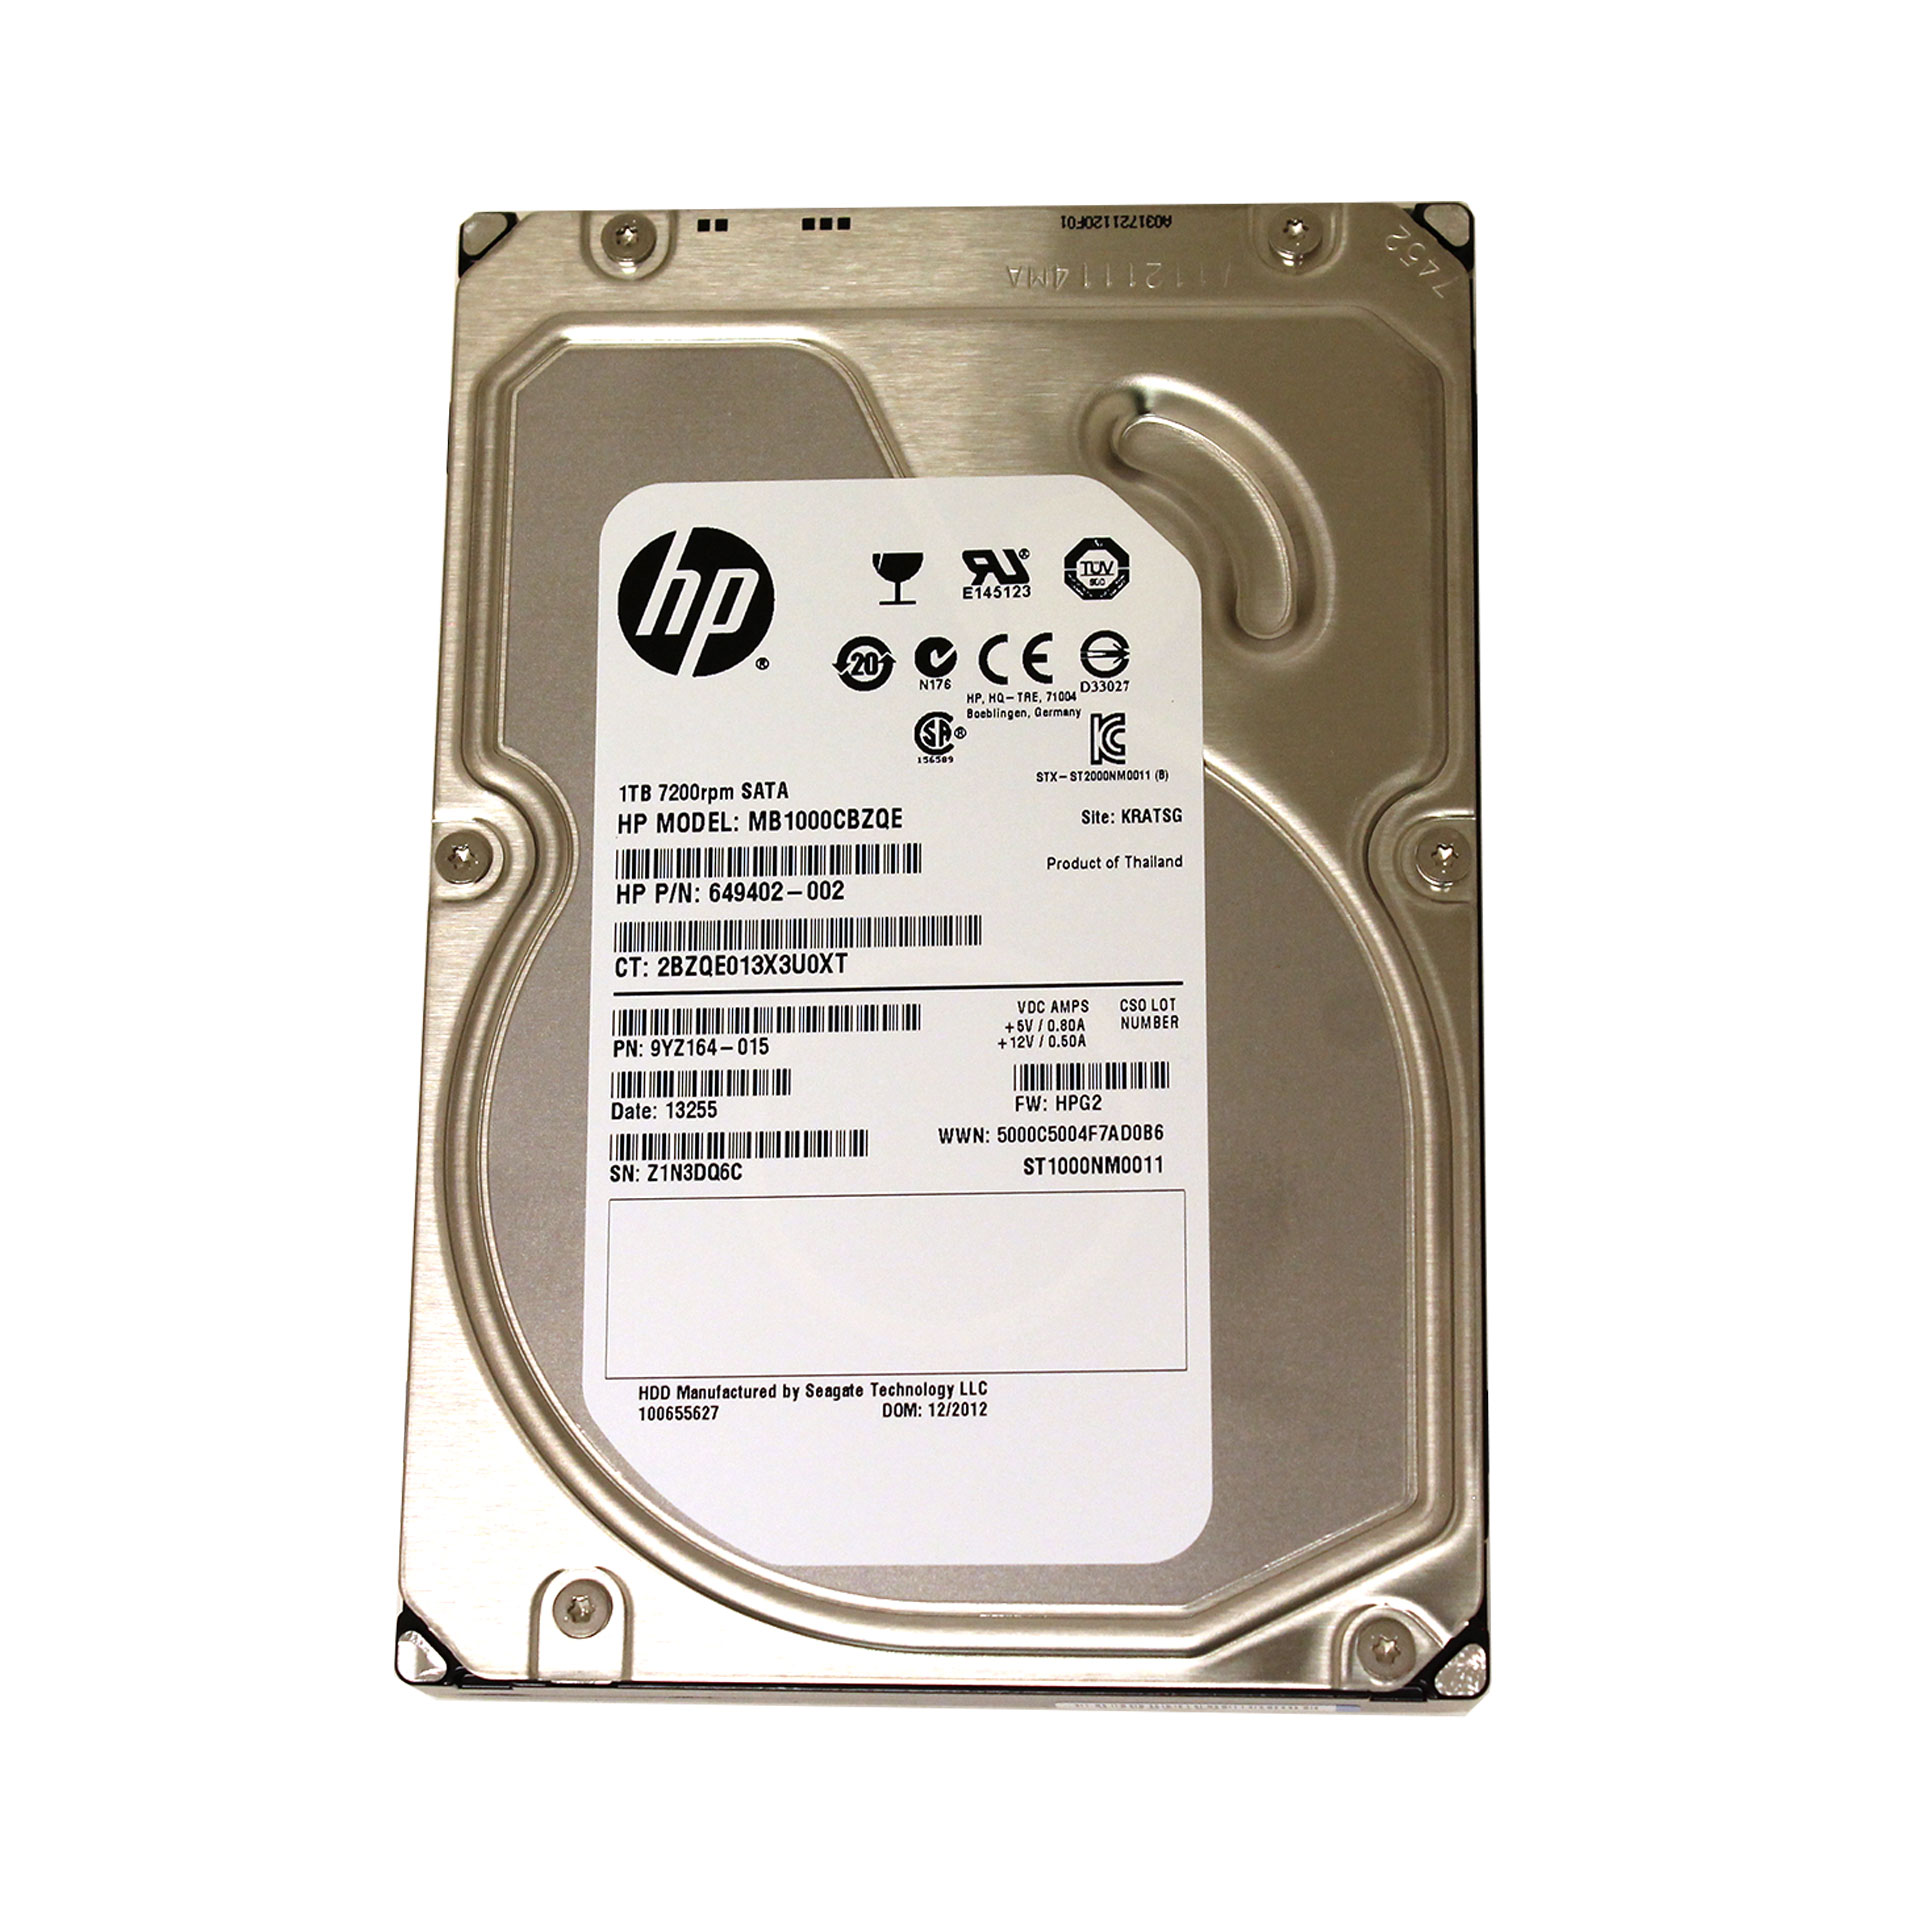 "HP 1TB MB1000CBZQE 7200RPM 3.5"" ST1000NM0011 649402-002"